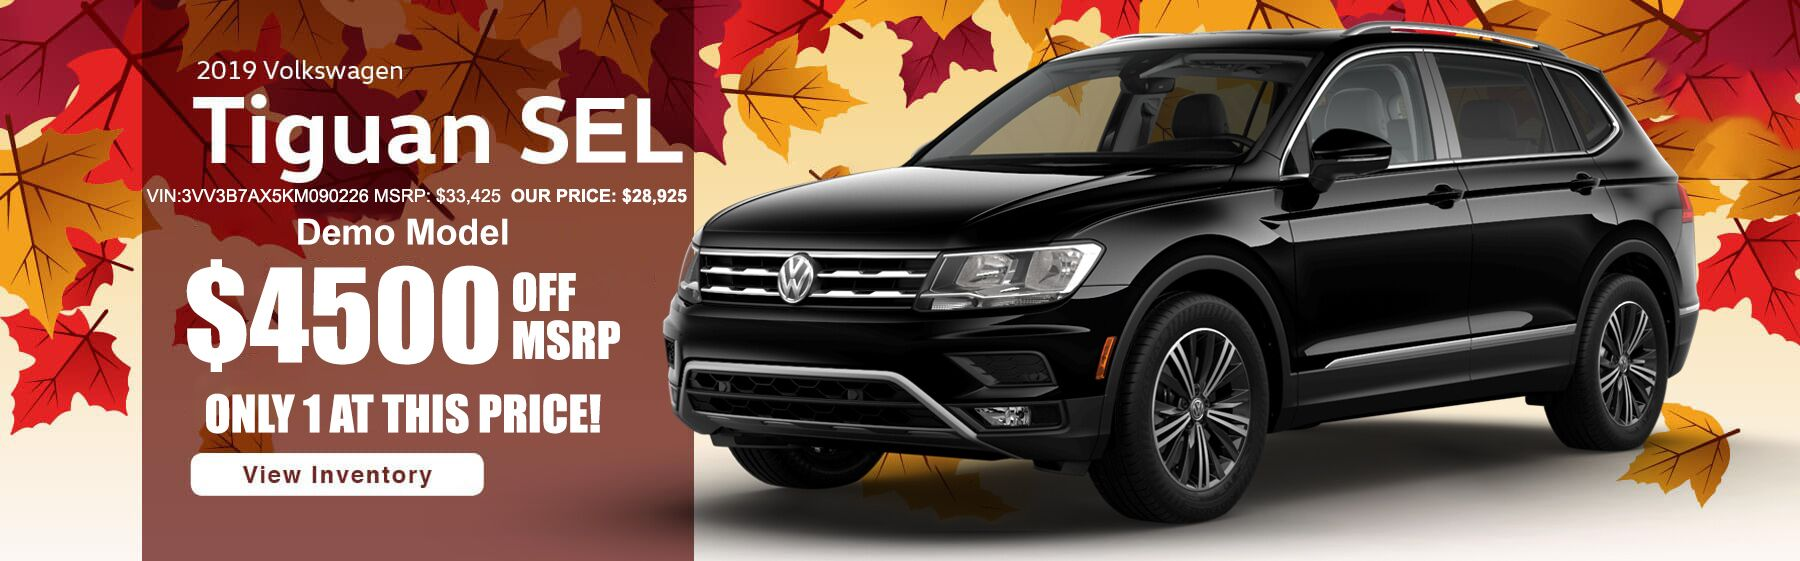 Tiguan DEMO $4500 OFF MSRP